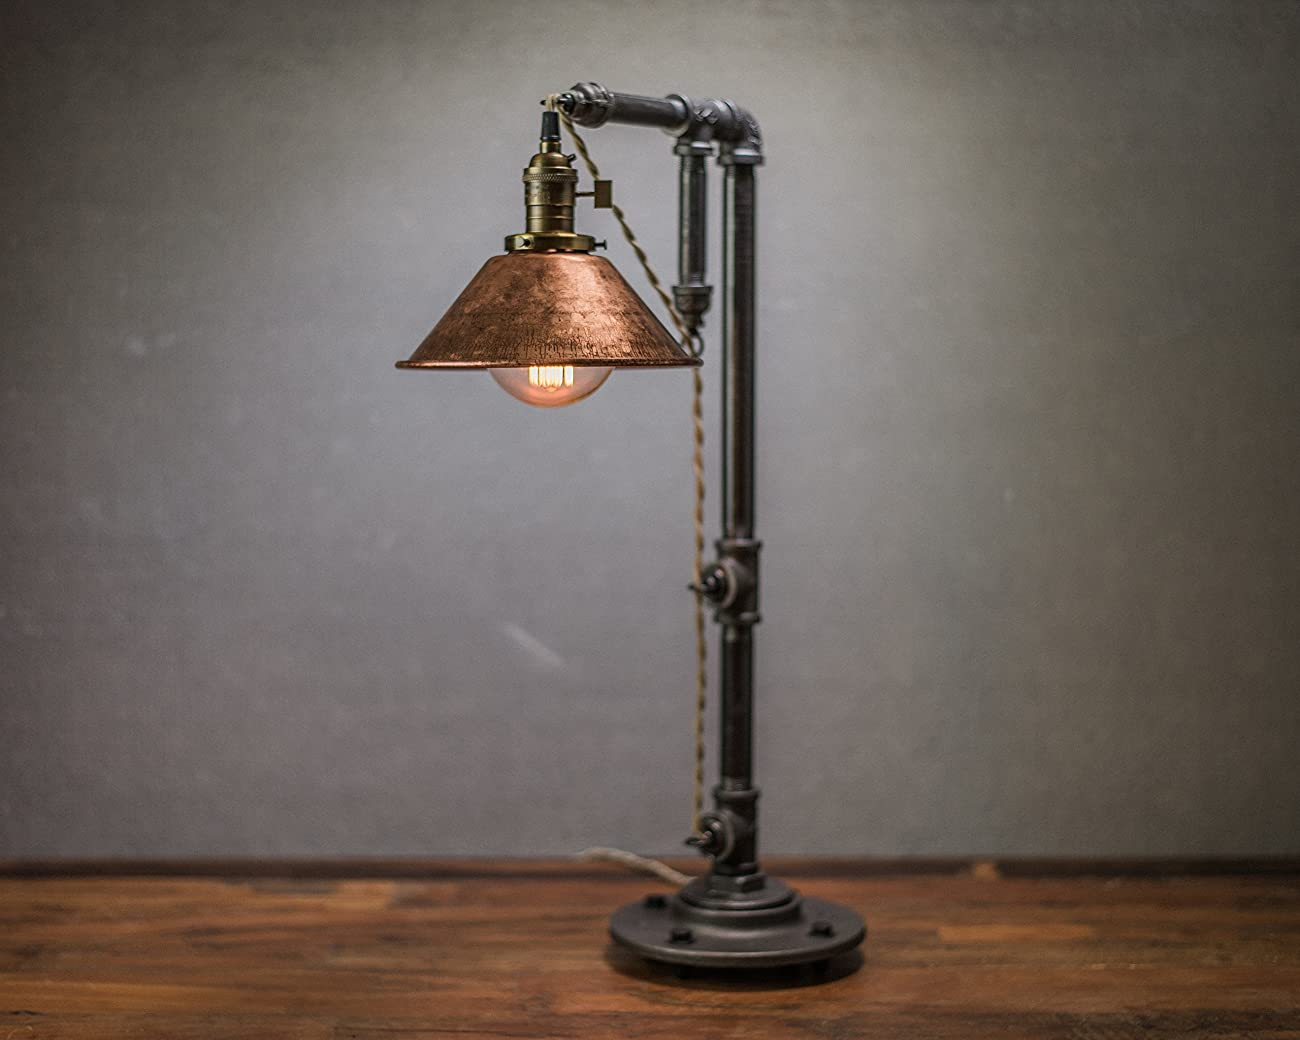 Industrial Style Table Lamp - Pendant Edison Bulb - Copper Shade 0